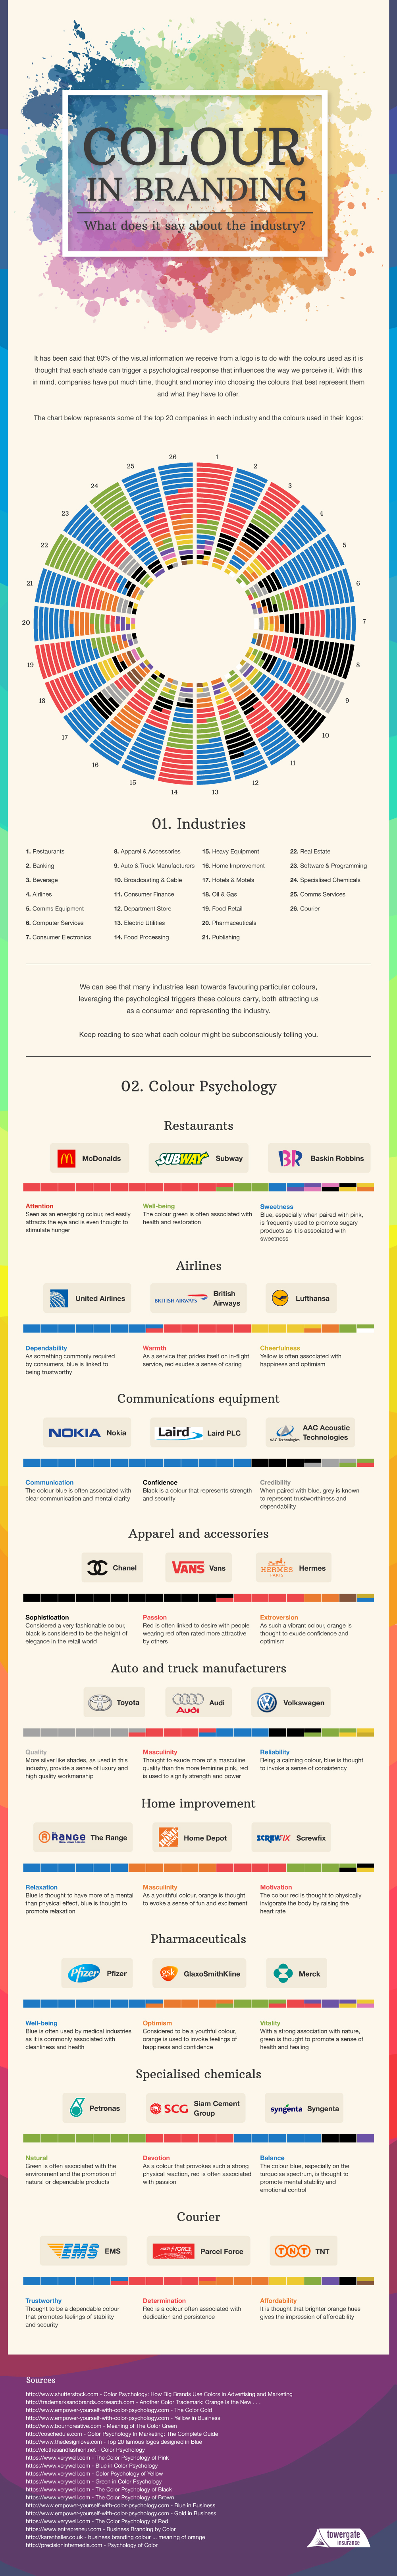 color-by-industry-infographic